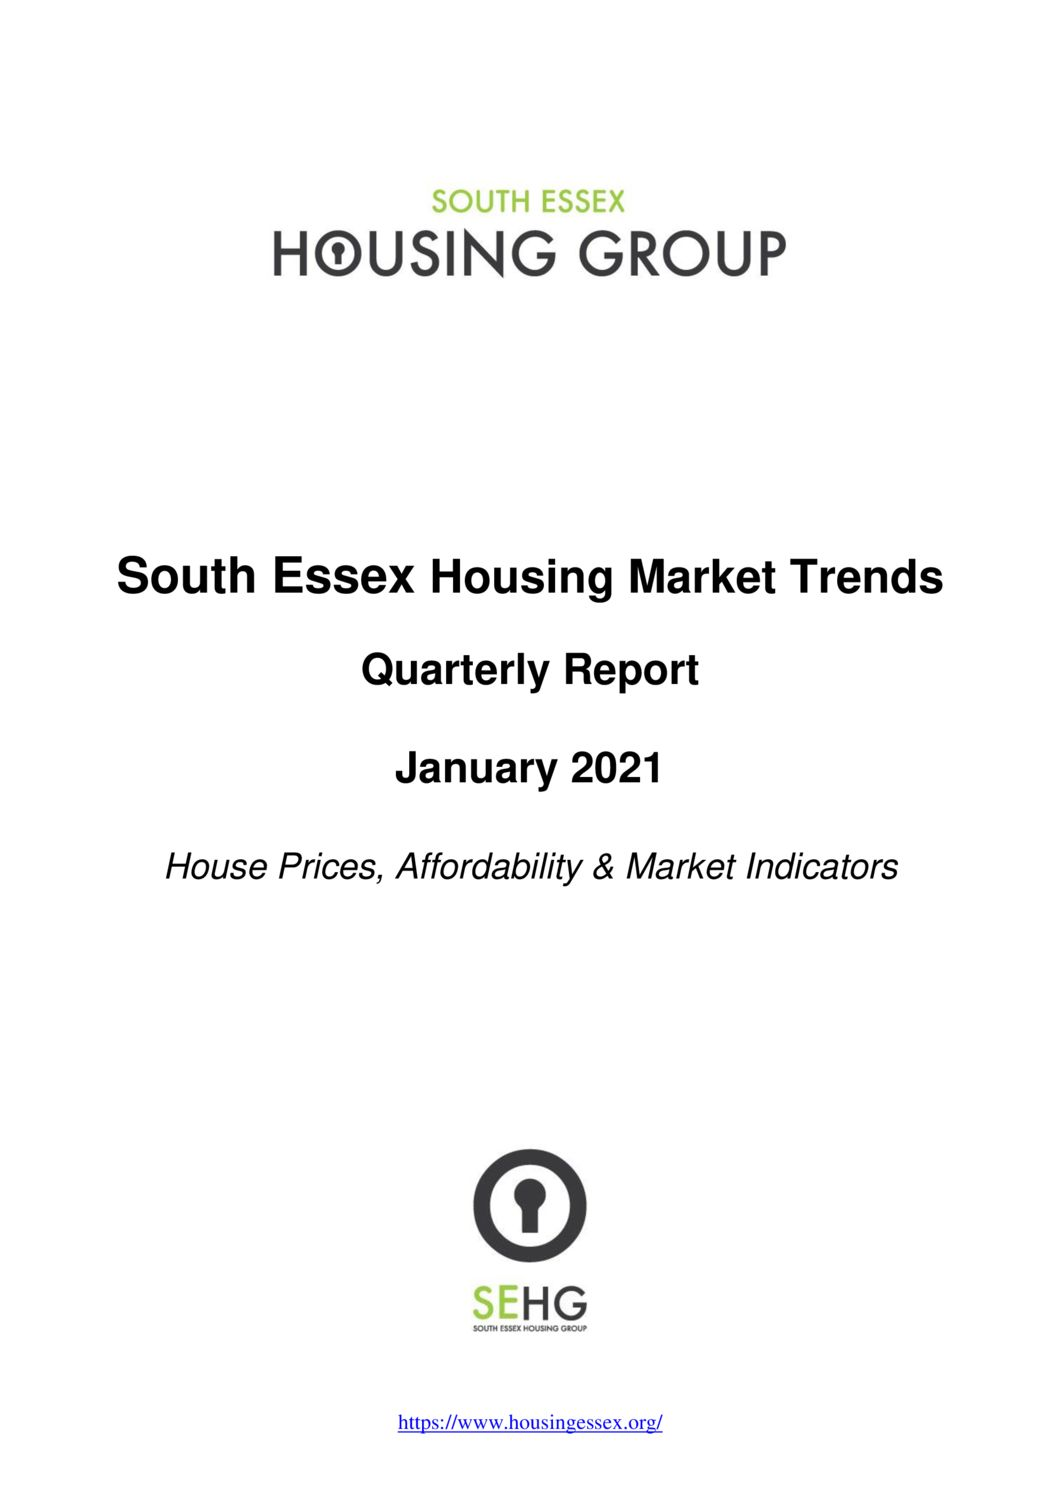 South Essex Housing Market Trends Report January 2021